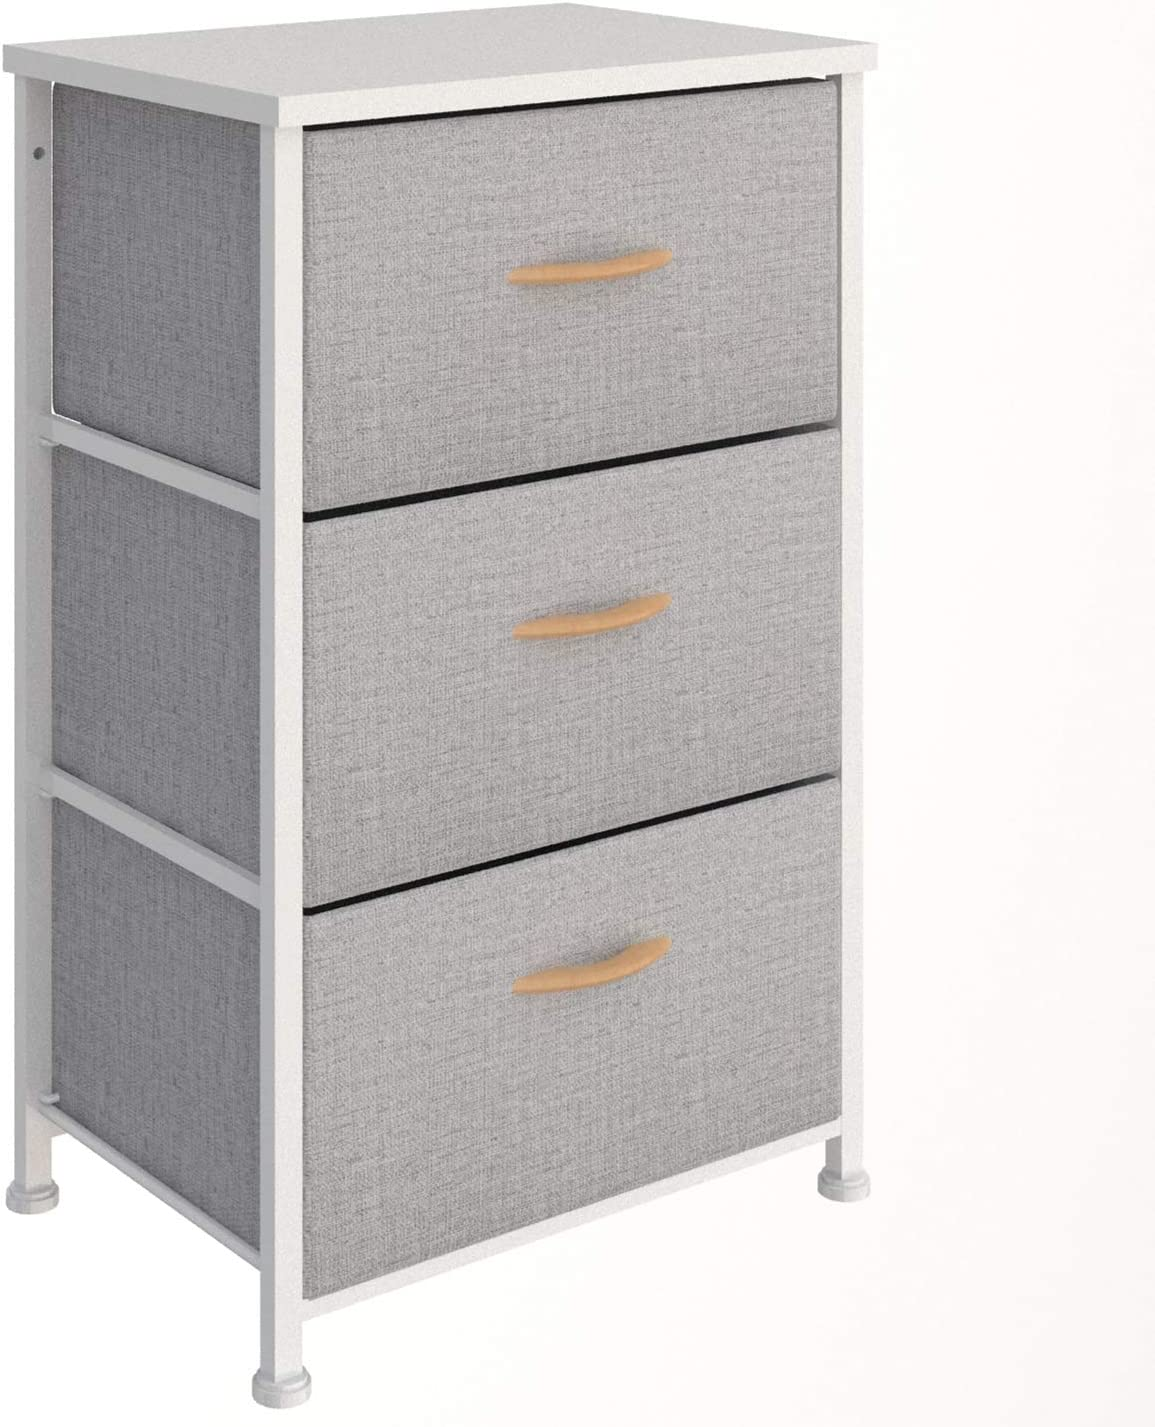 Vogga Dresser with 3 Drawers, Fabric Dresser Storage Tower, Dressers for Bedroom, Living Room, Hallway, Closets & Nursery (3 Drawer, Grey) with Sturdy Steel Frame, Wood Top, Easy Pull Handle